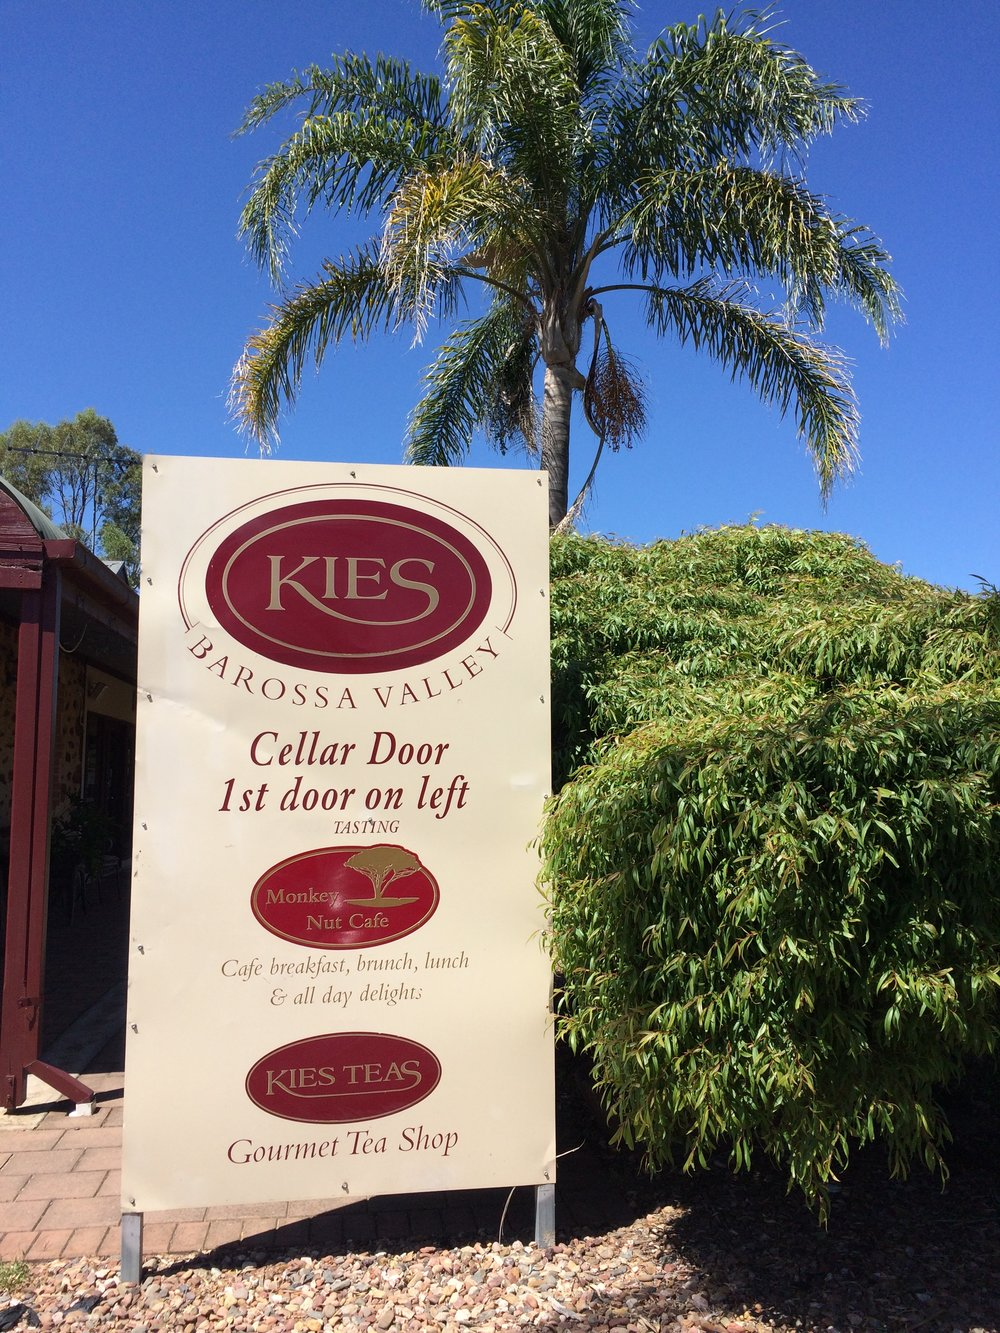 Kies Family Wines - Barossa ValleyThis winery was on a beautiful estate!